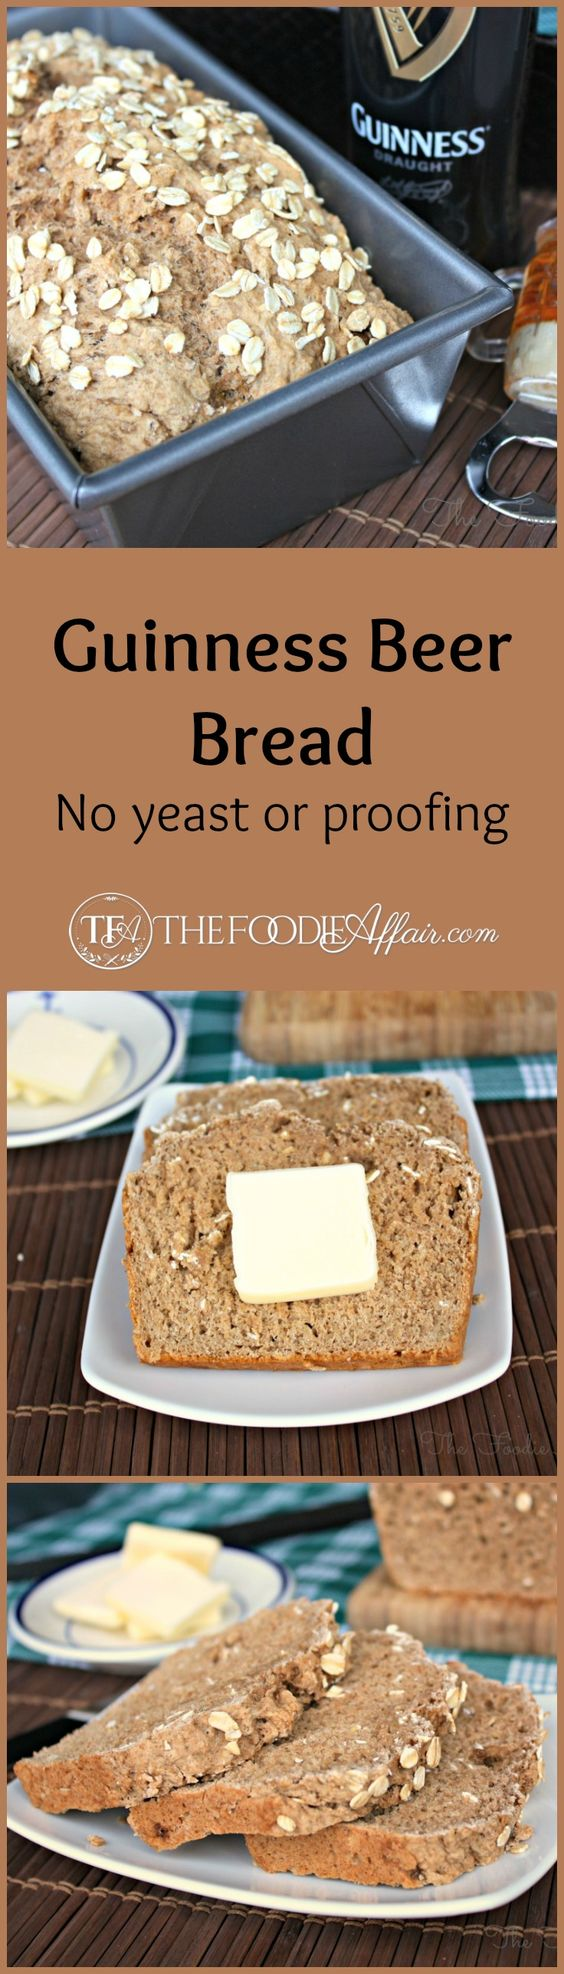 bread guinness quick bread beer breads foodies baking simple bread ...